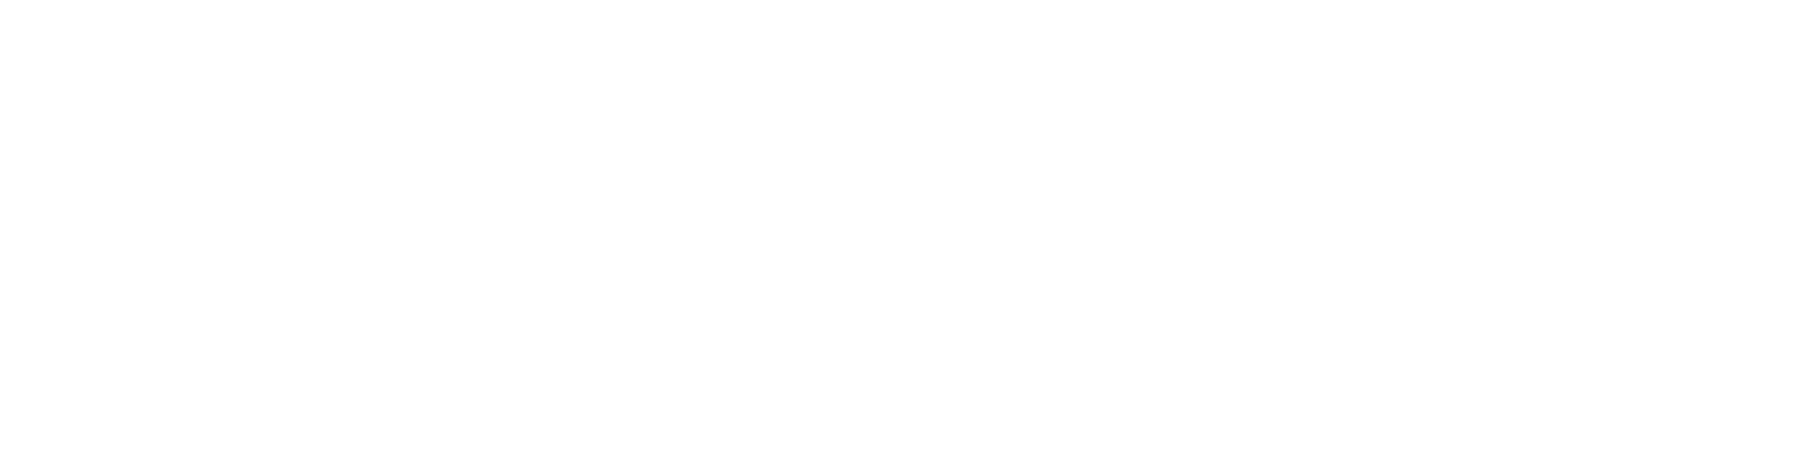 So You Want Me To Believe... Podcast Home